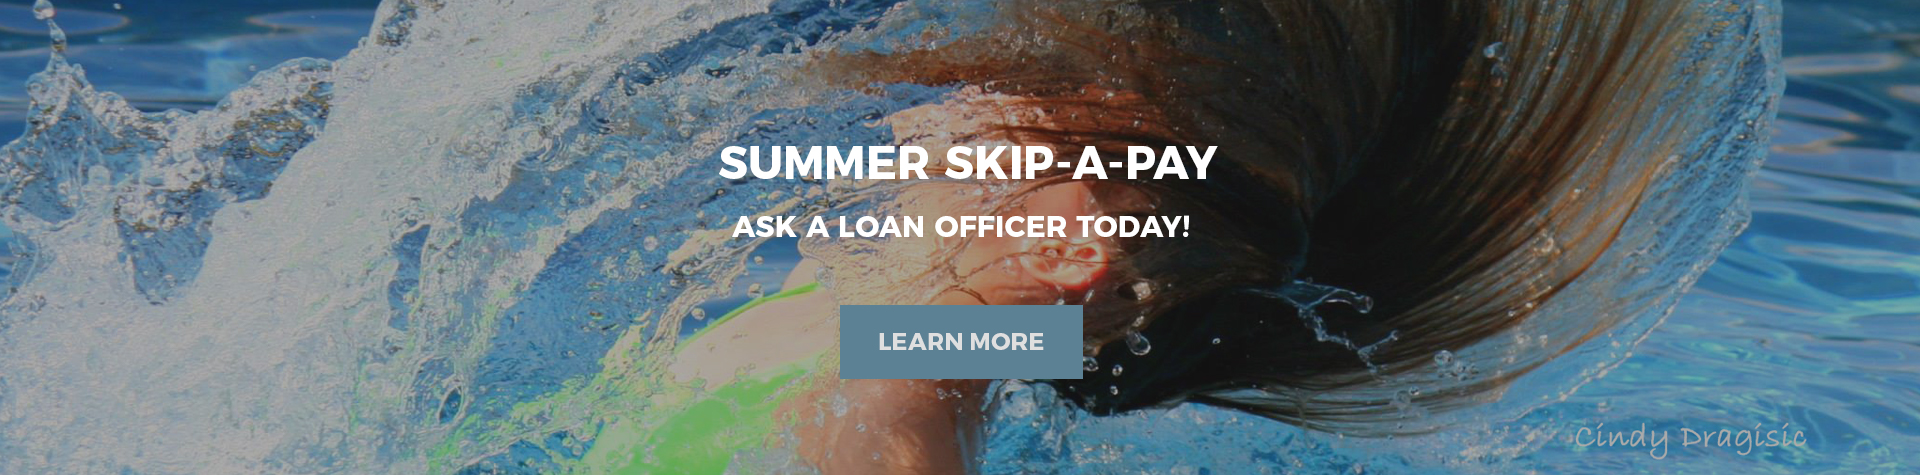 Summer Skip-A-Pay, ask a loan officer today.